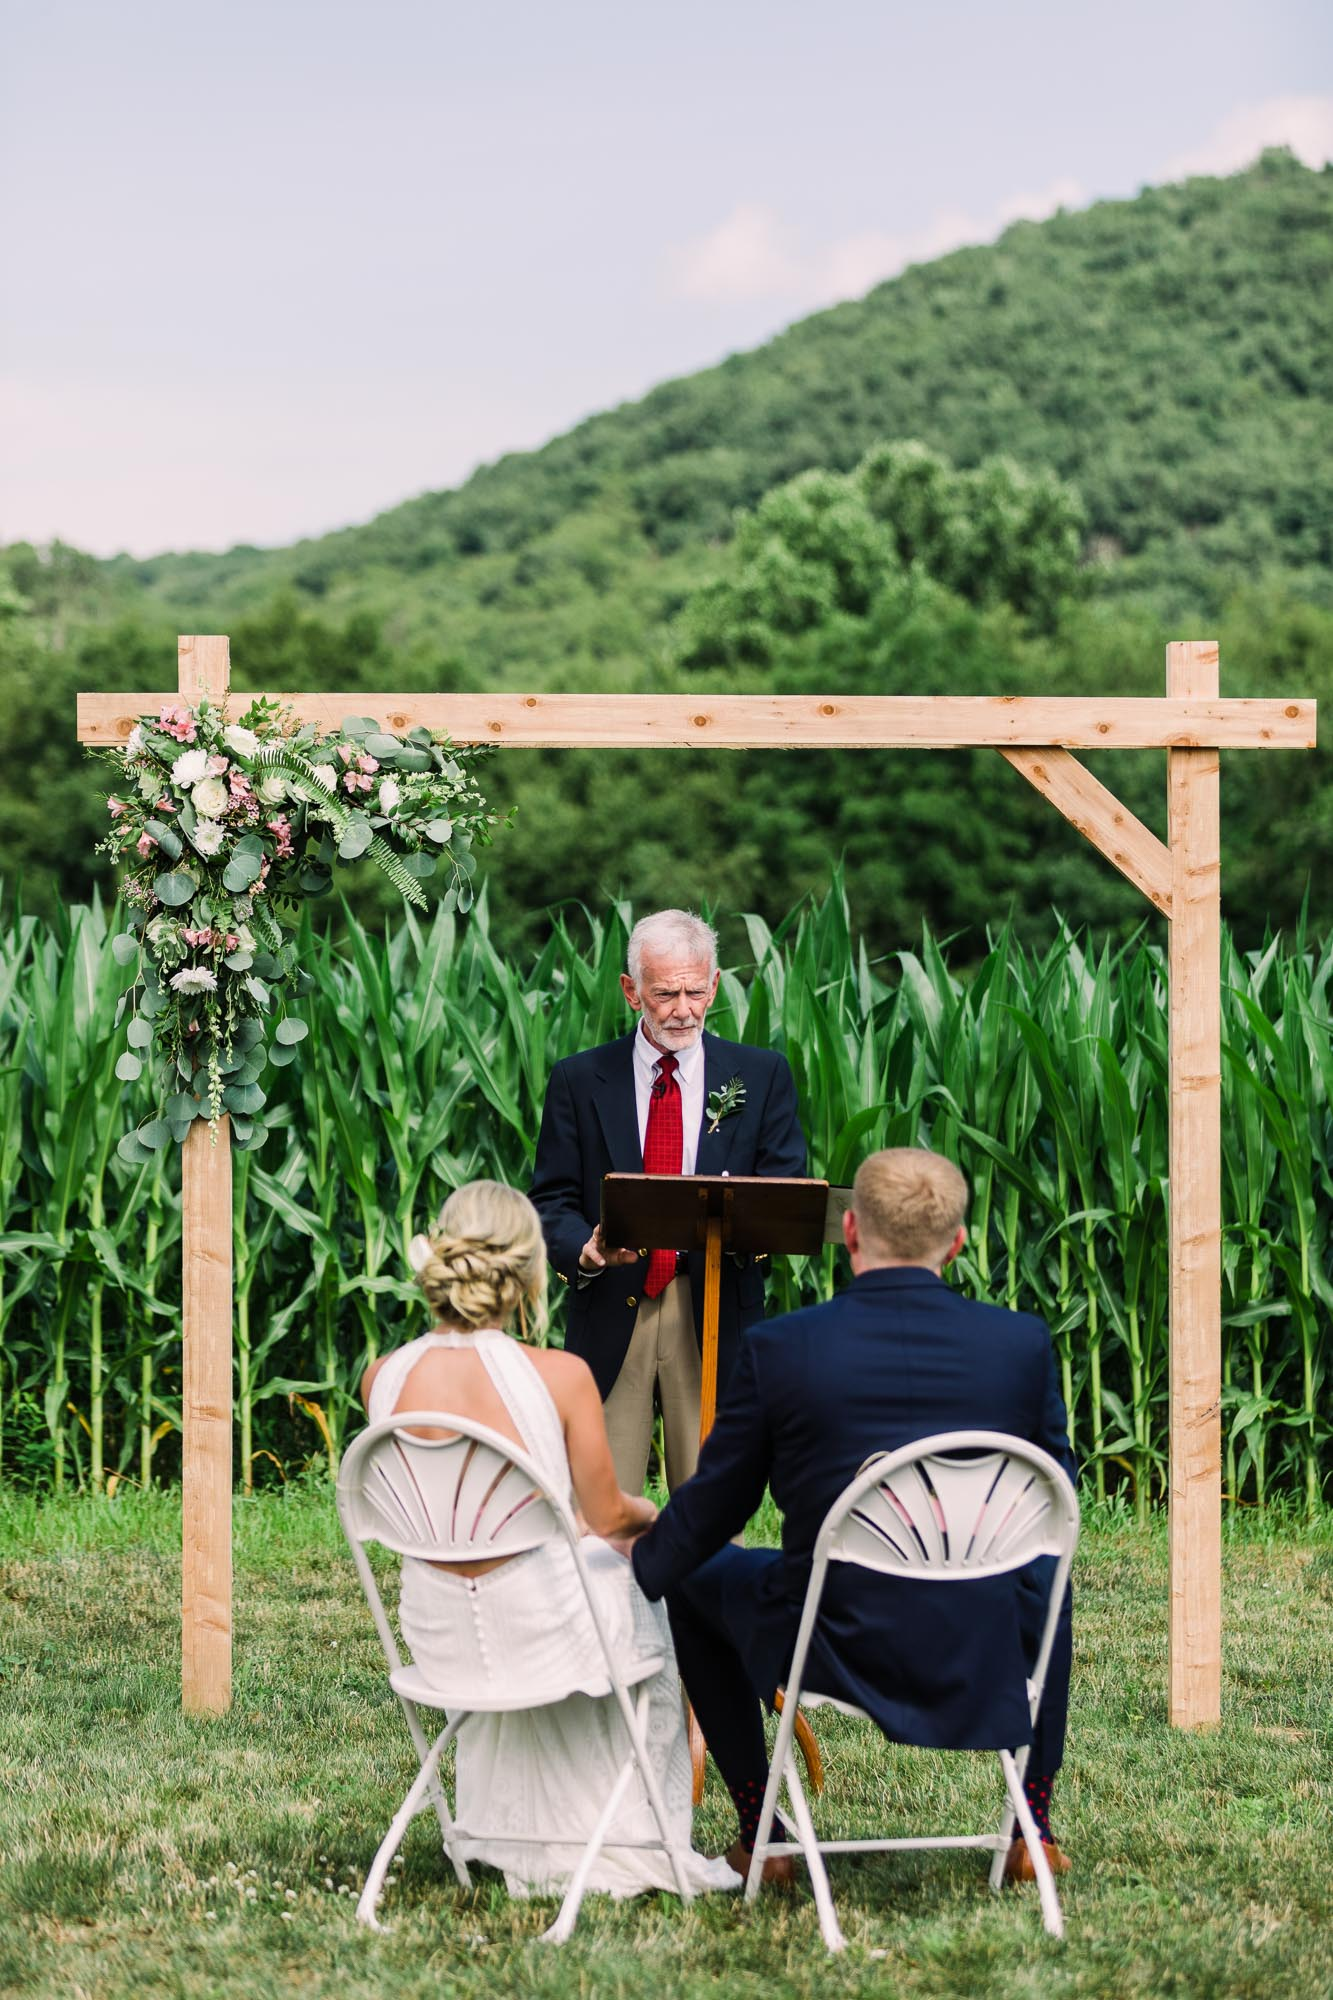 Muncy-backyard-farm-wedding-4839.jpg